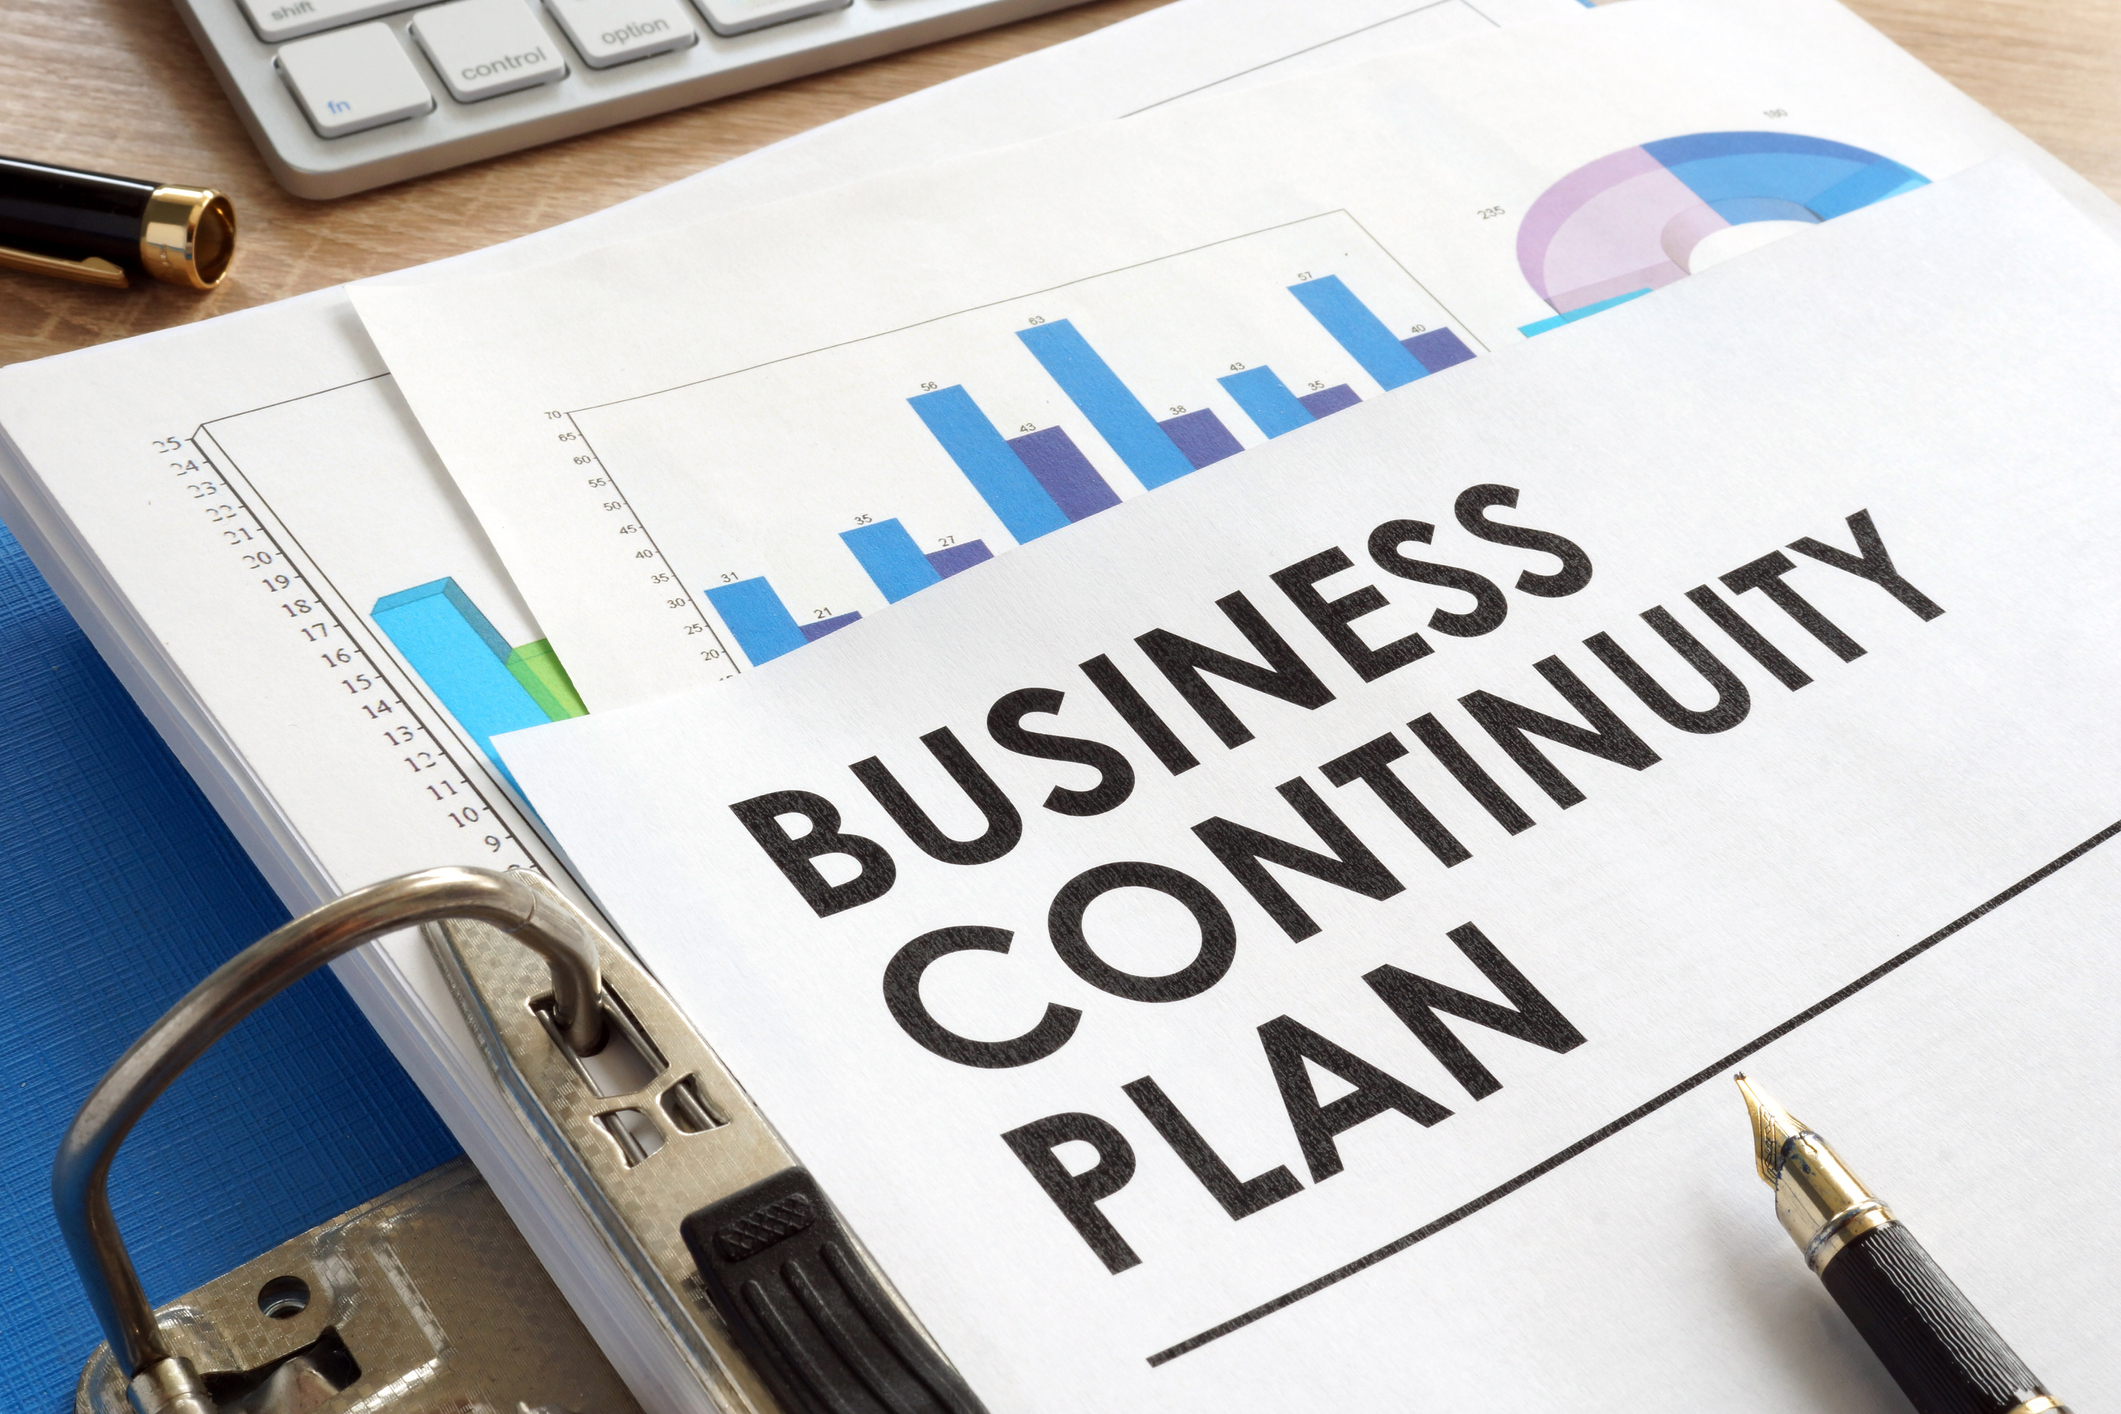 Business Continuity Planning: Why It's Important